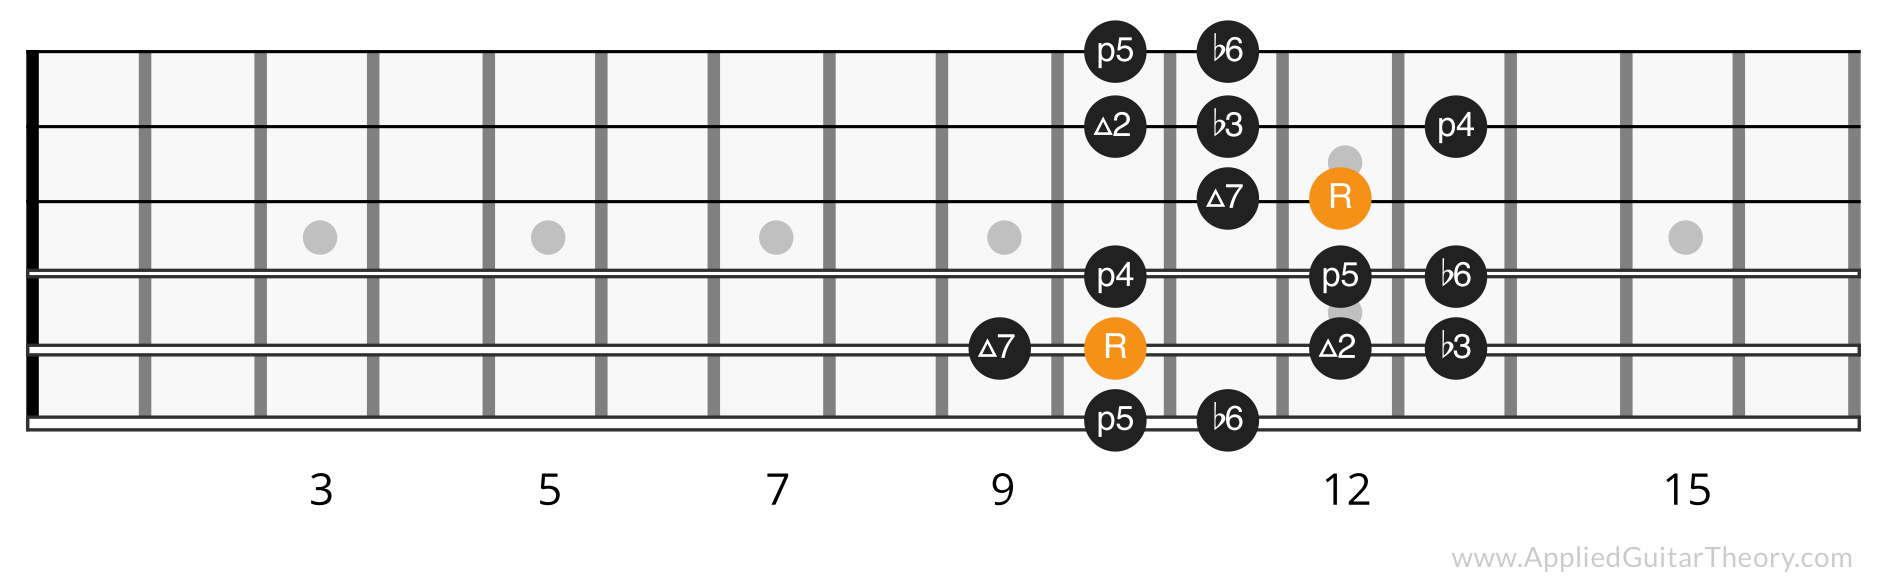 Harmonic minor scale position 4